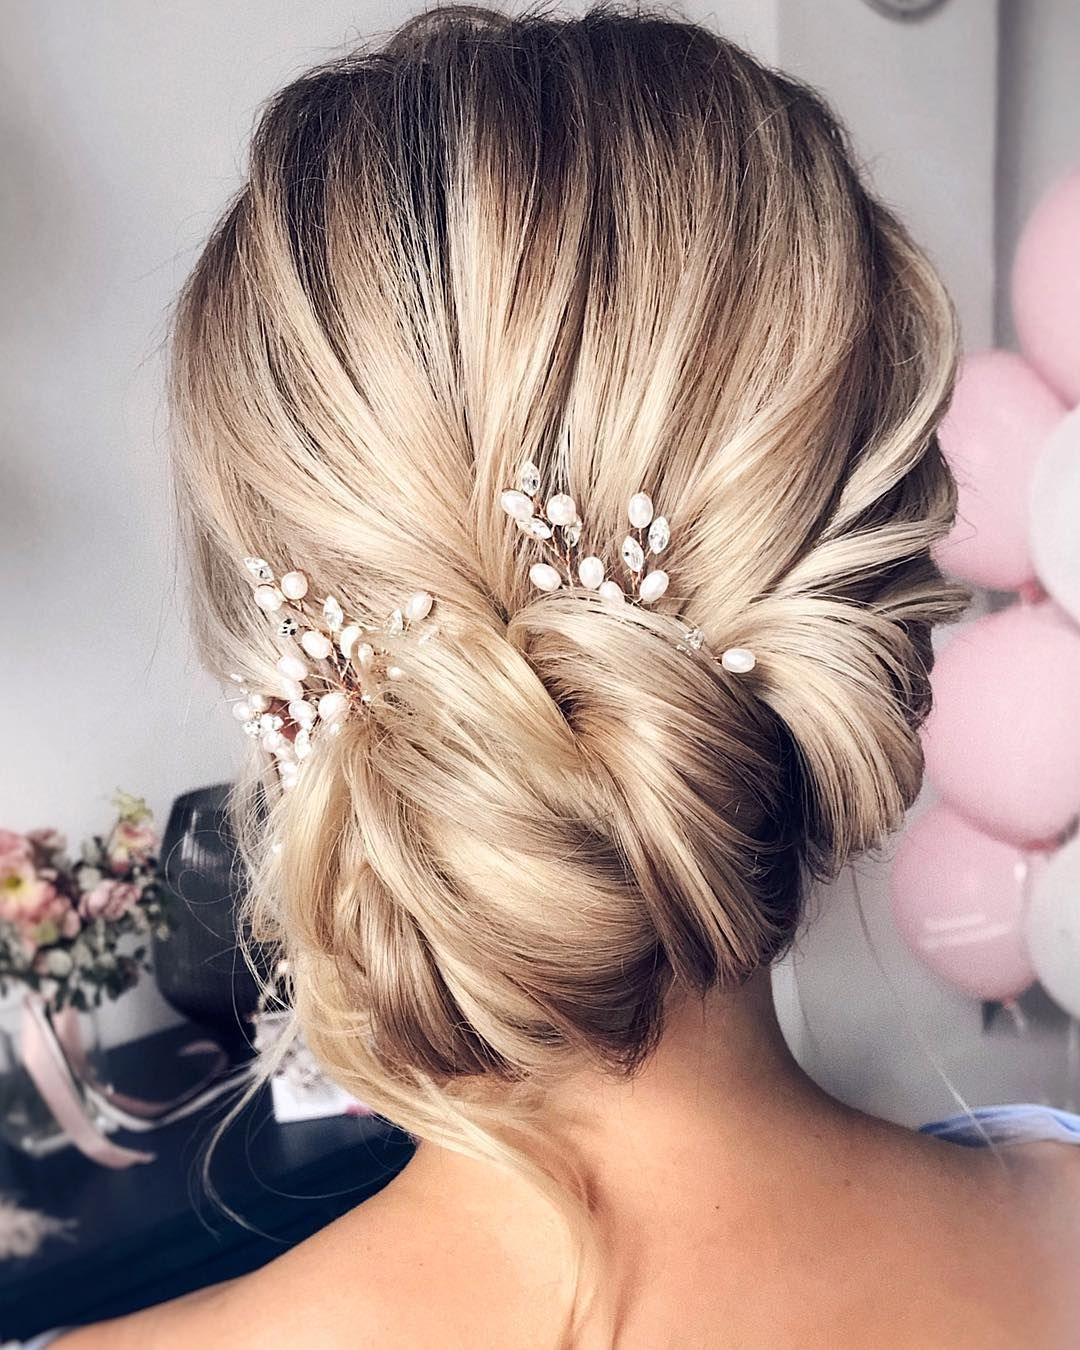 30 Beautiful Prom Hairstyles That Ll Steal The Night Best Prom Hairstyle Ideas B Long Hair Wedding Styles Wedding Hairstyles For Long Hair Bridal Hair Updo